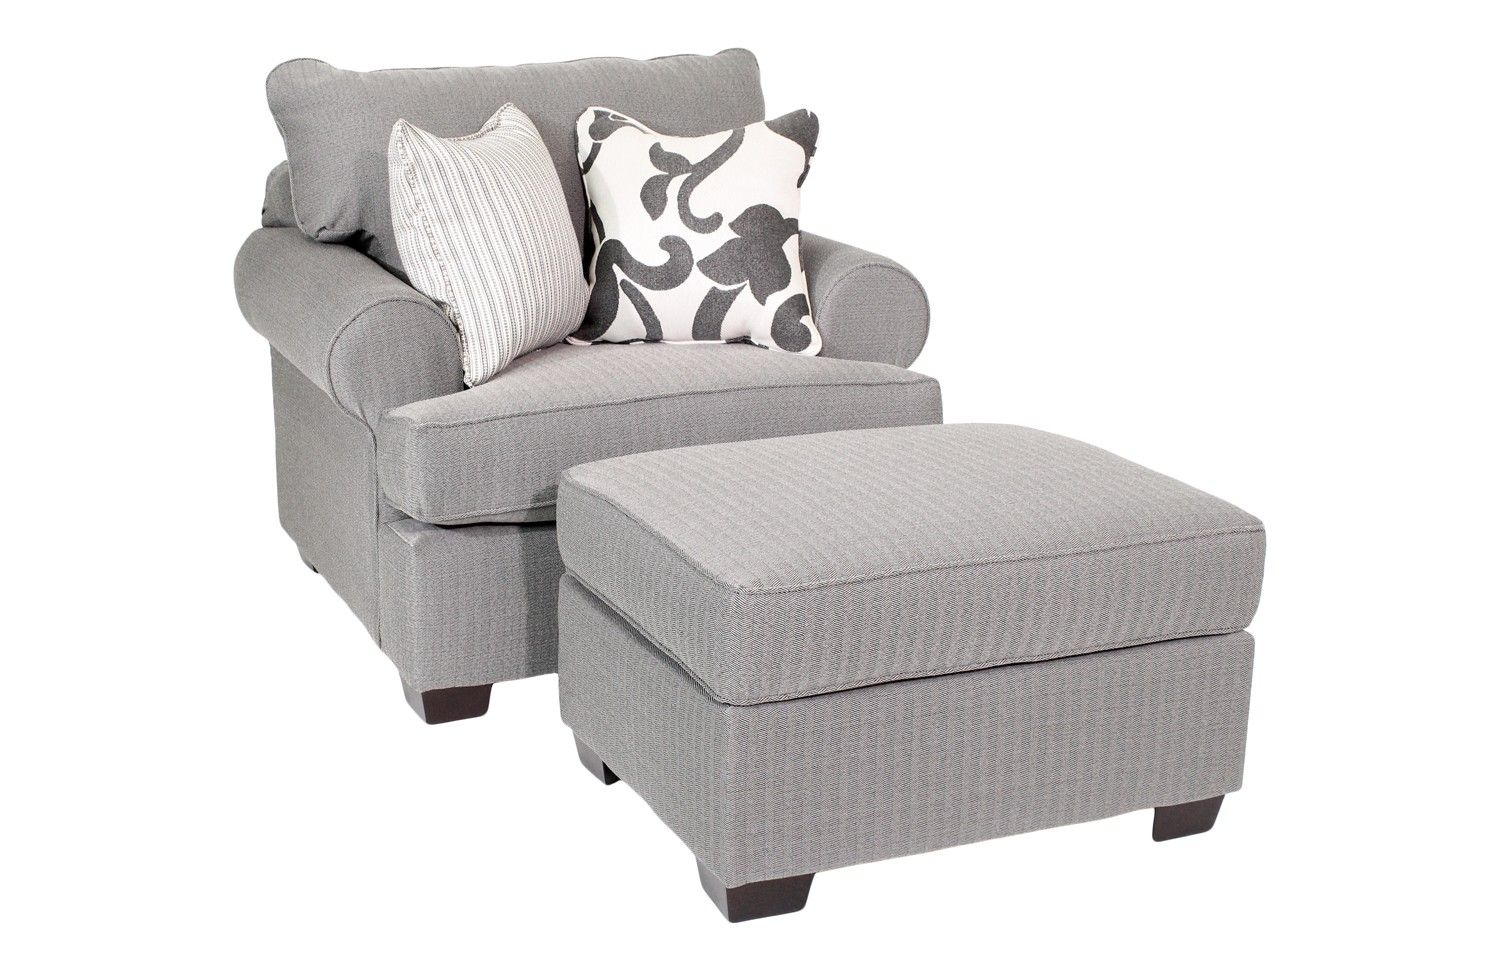 Sofas For Less Low Seating Sofa Online India Alison Chair Mor Furniture Living Room